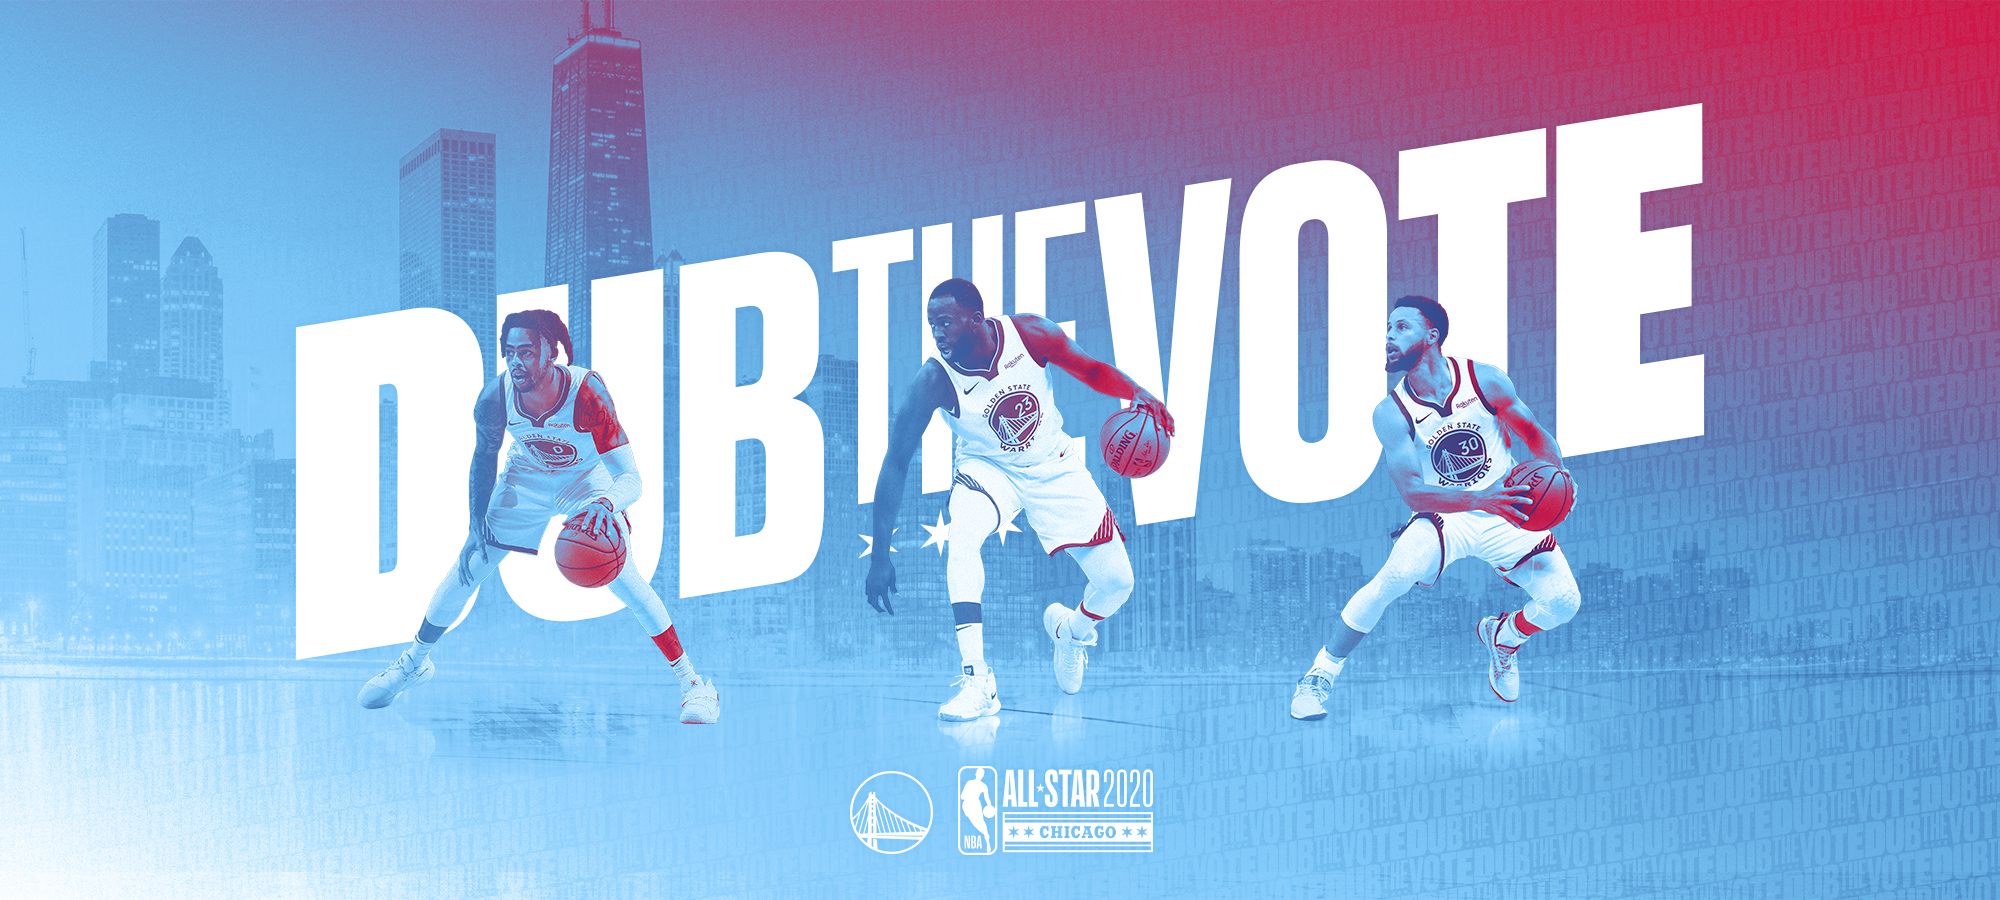 Dub The Vote 2020 Nba All Star Game Golden State Warriors